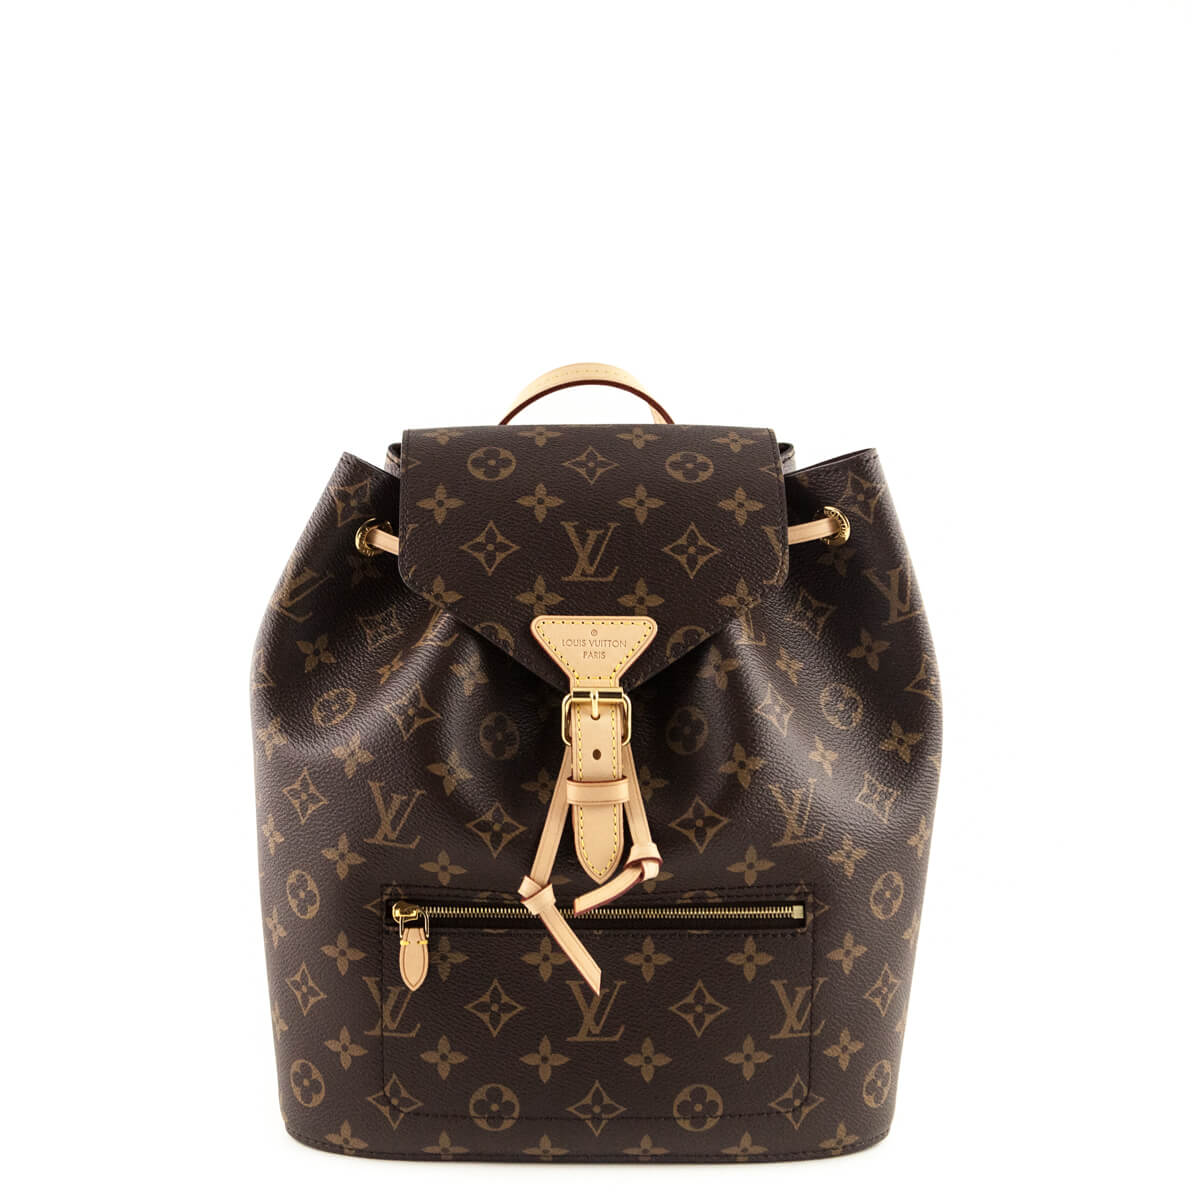 4a45bd0d80a5 Louis Vuitton Monogram Montsouris Backpack - LOVE that BAG - Preowned  Authentic Designer ...